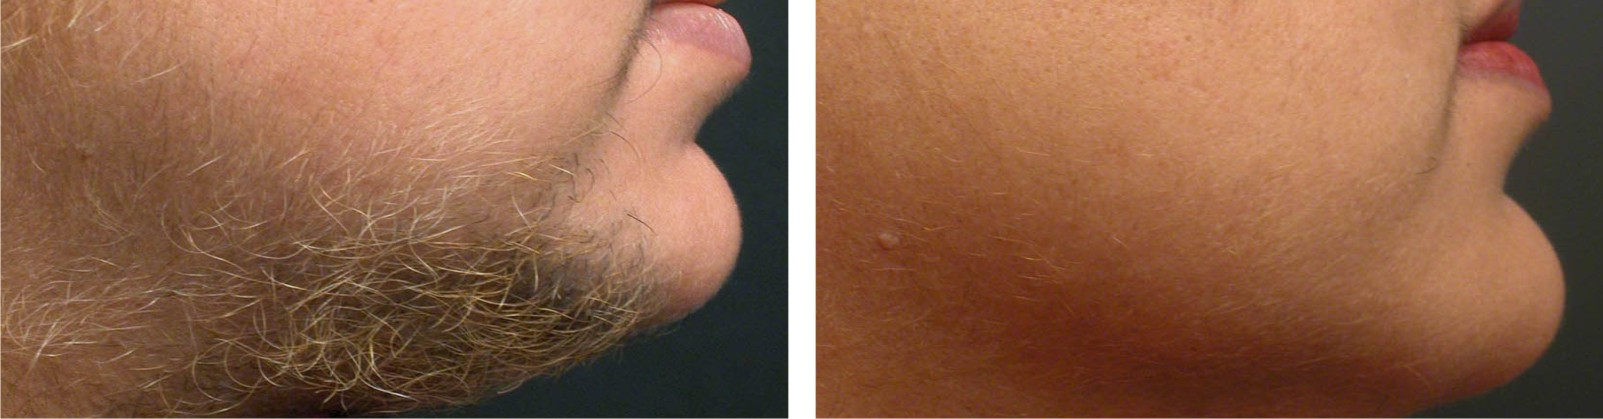 Painless Laser Hair Removal Image One